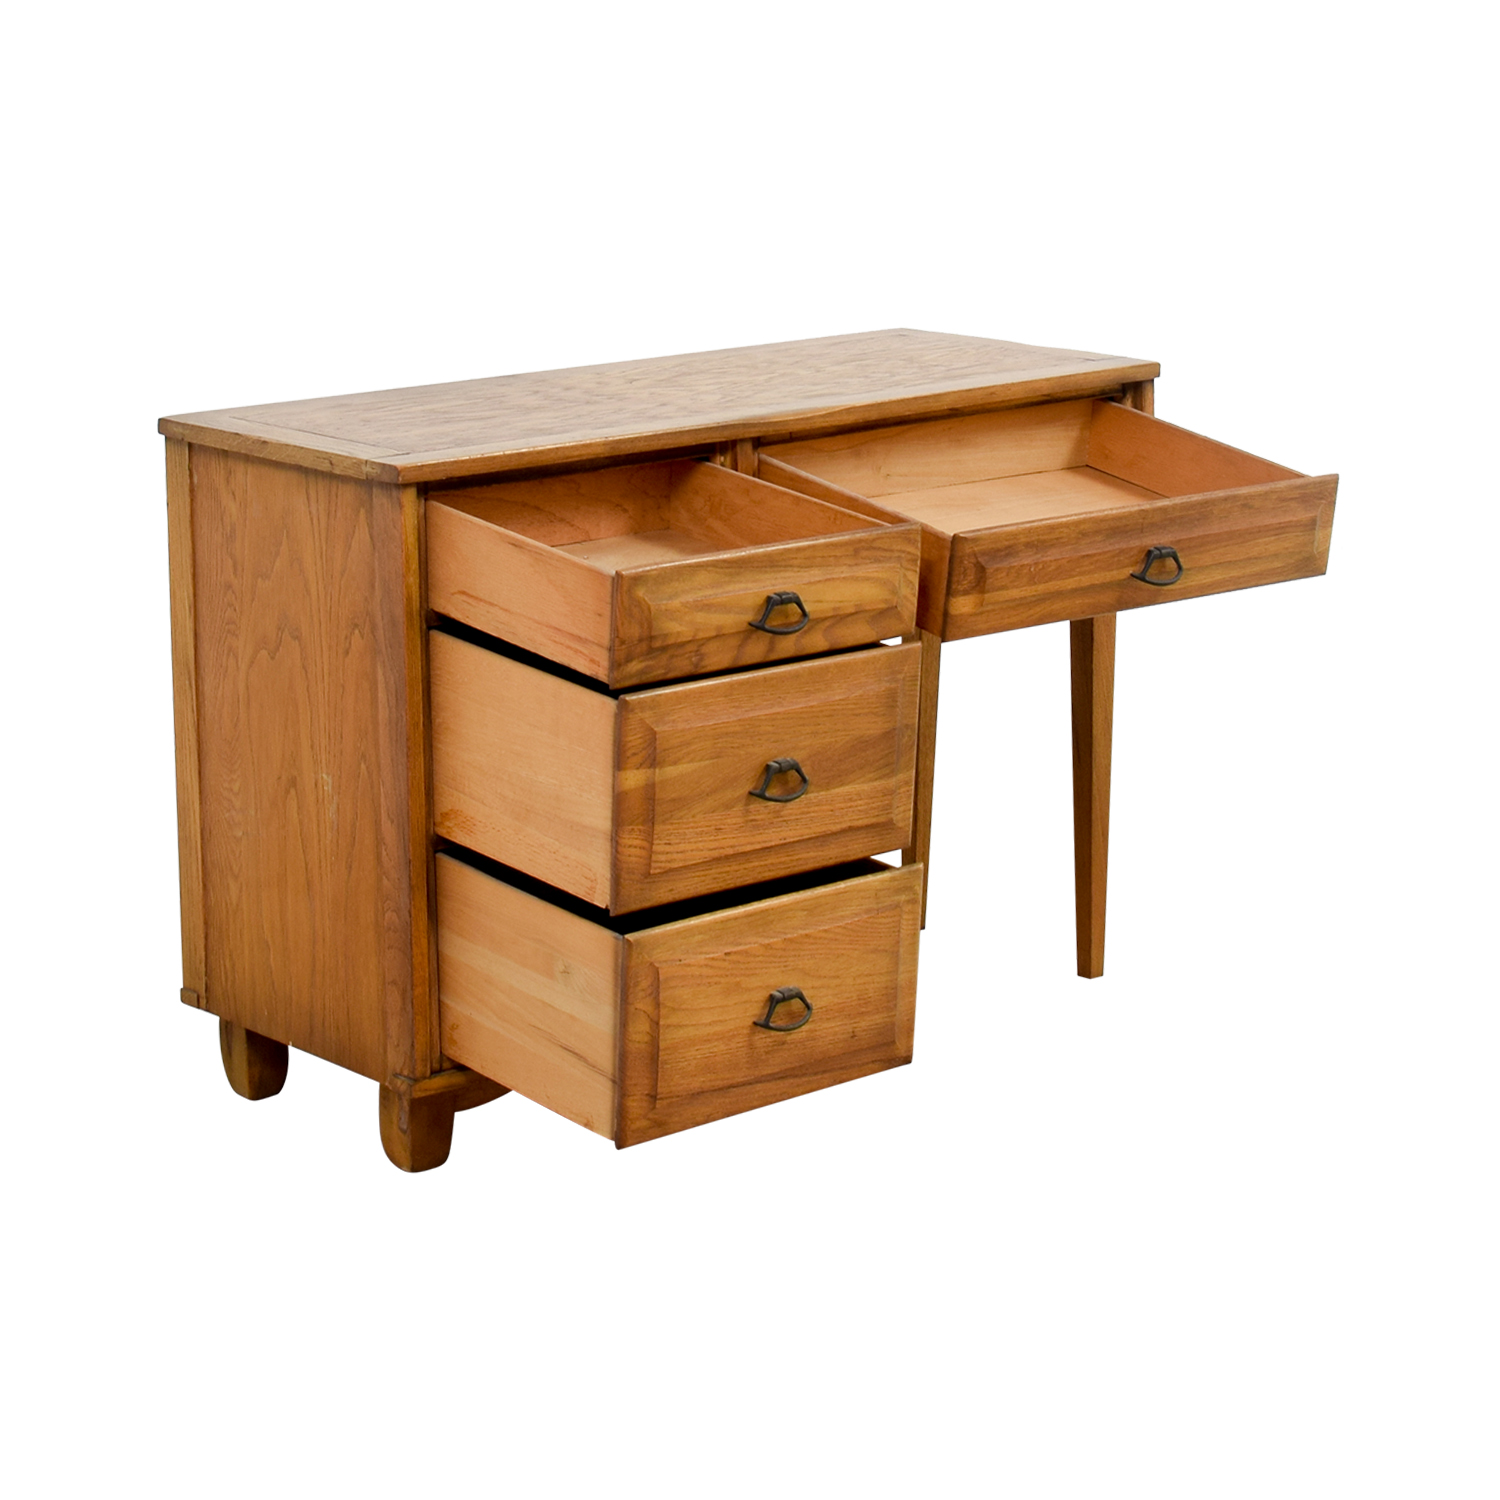 Vintage Oak Desk with Chair price